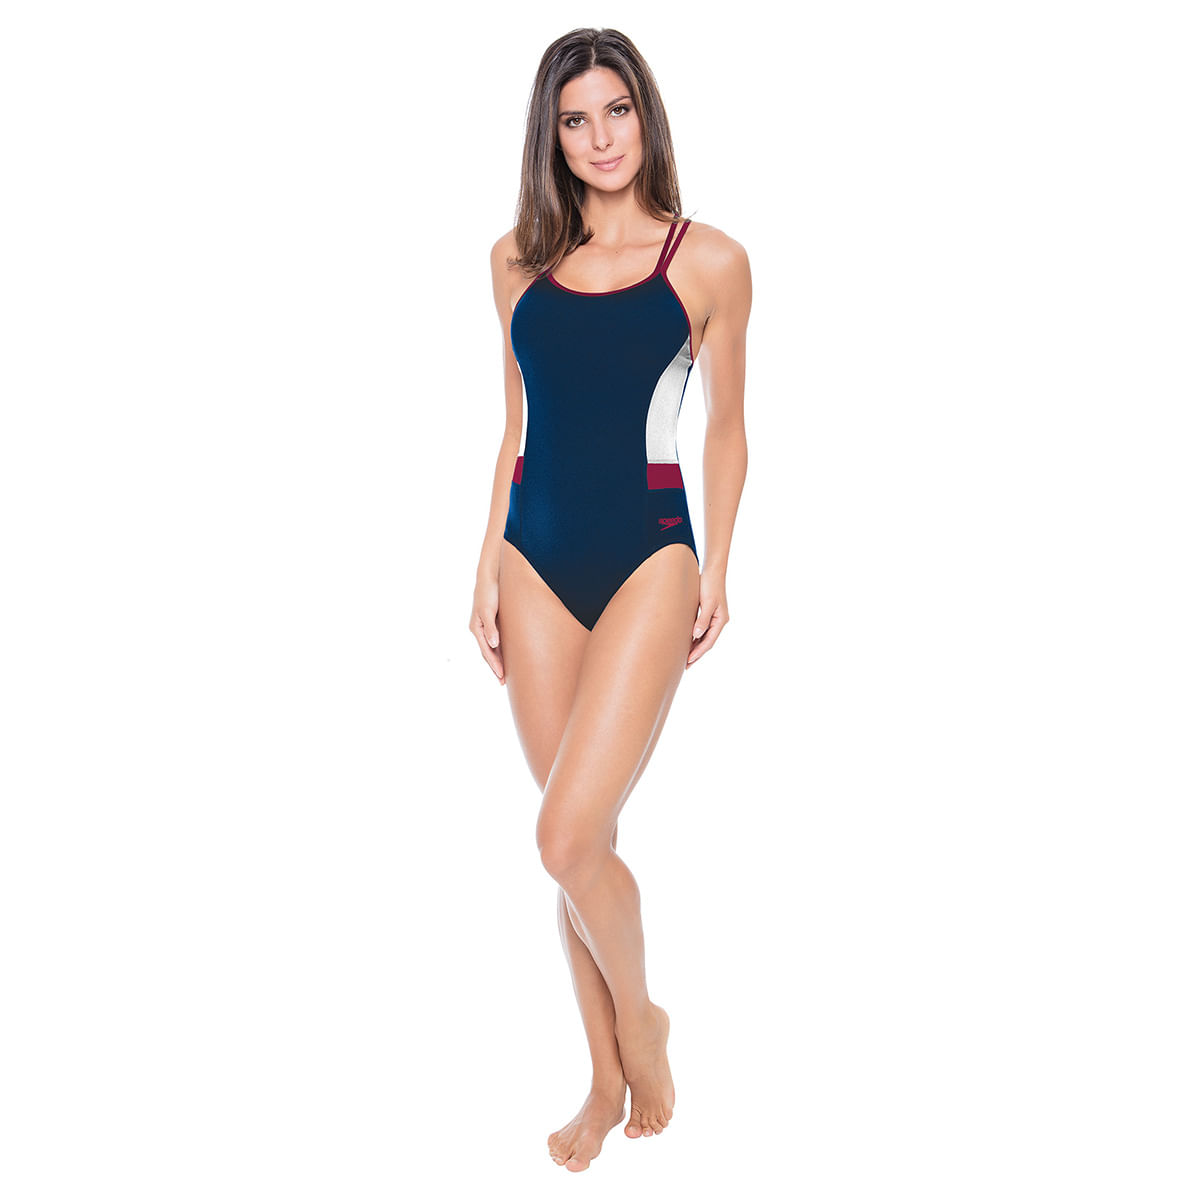 53378a54e Maiô Speedo Training - Comprar no ShopFácil - uma empresa Bradesco